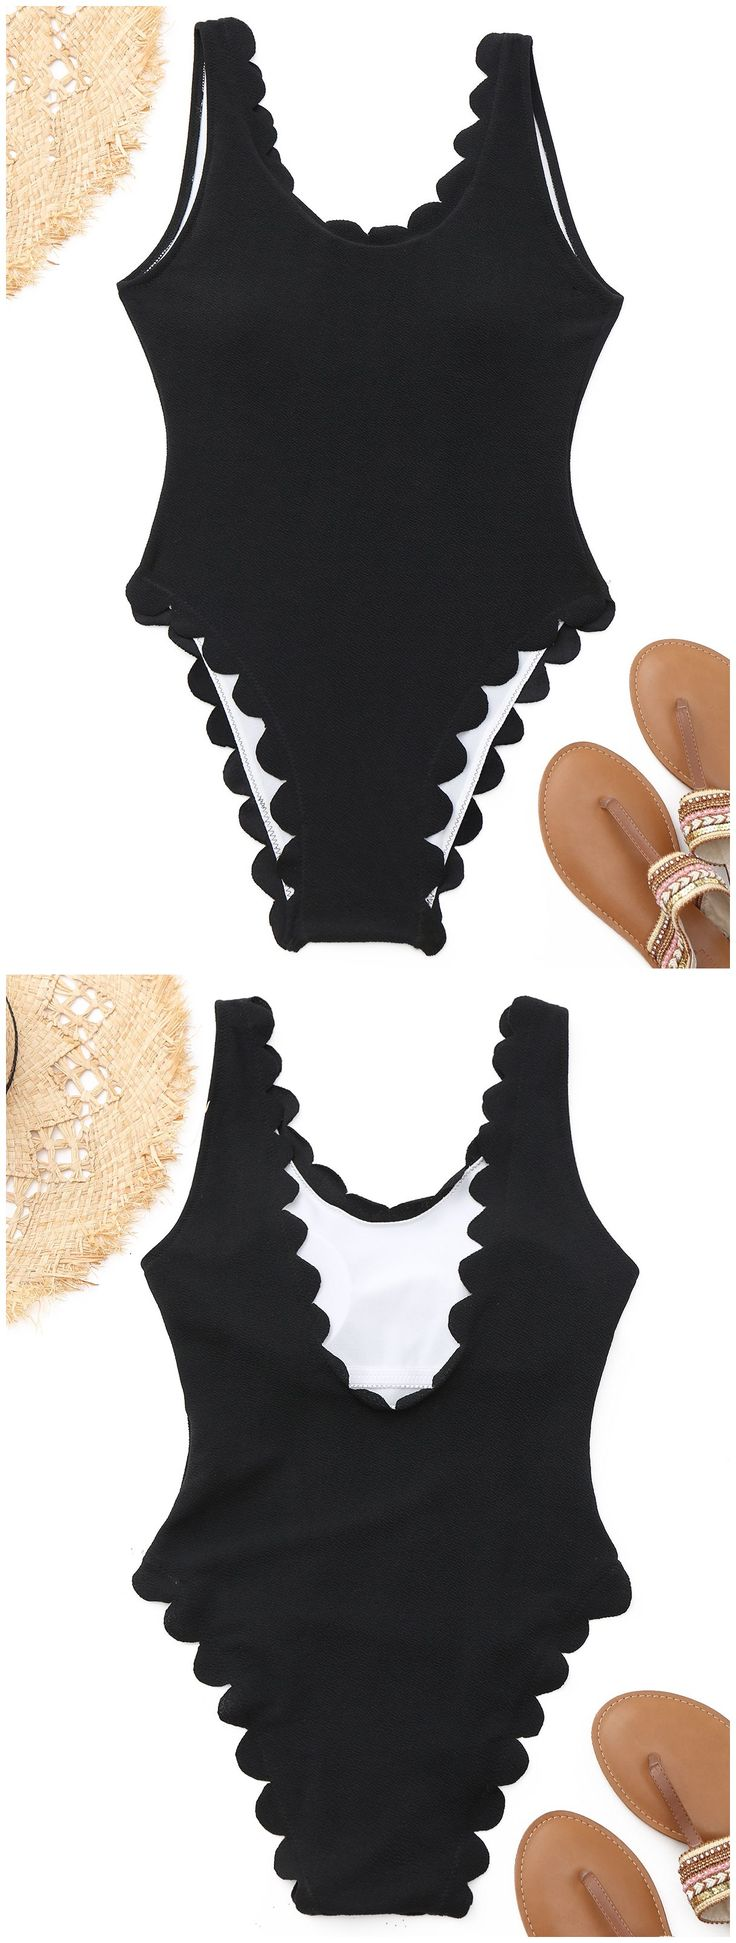 Up to 80% OFF! High Cut Scalloped One Piece Swimwear. #Zaful #swimwear Zaful, zaful bikinis, zaful dress, zaful swimwear, style, outfits,sweater, hoodies, women fashion, summer outfits, swimwear, bikinis, micro bikini, high waisted bikini, halter bikini, crochet bikini, one piece swimwear, tankini, bikini set, cover ups, bathing suit, swimsuits, summer fashion, summer outfits, Christmas, ugly Christmas, Thanksgiving, Gift, New Year Eve, New Year 2017. @zaful Extra 10% OFF Code:ZF2017